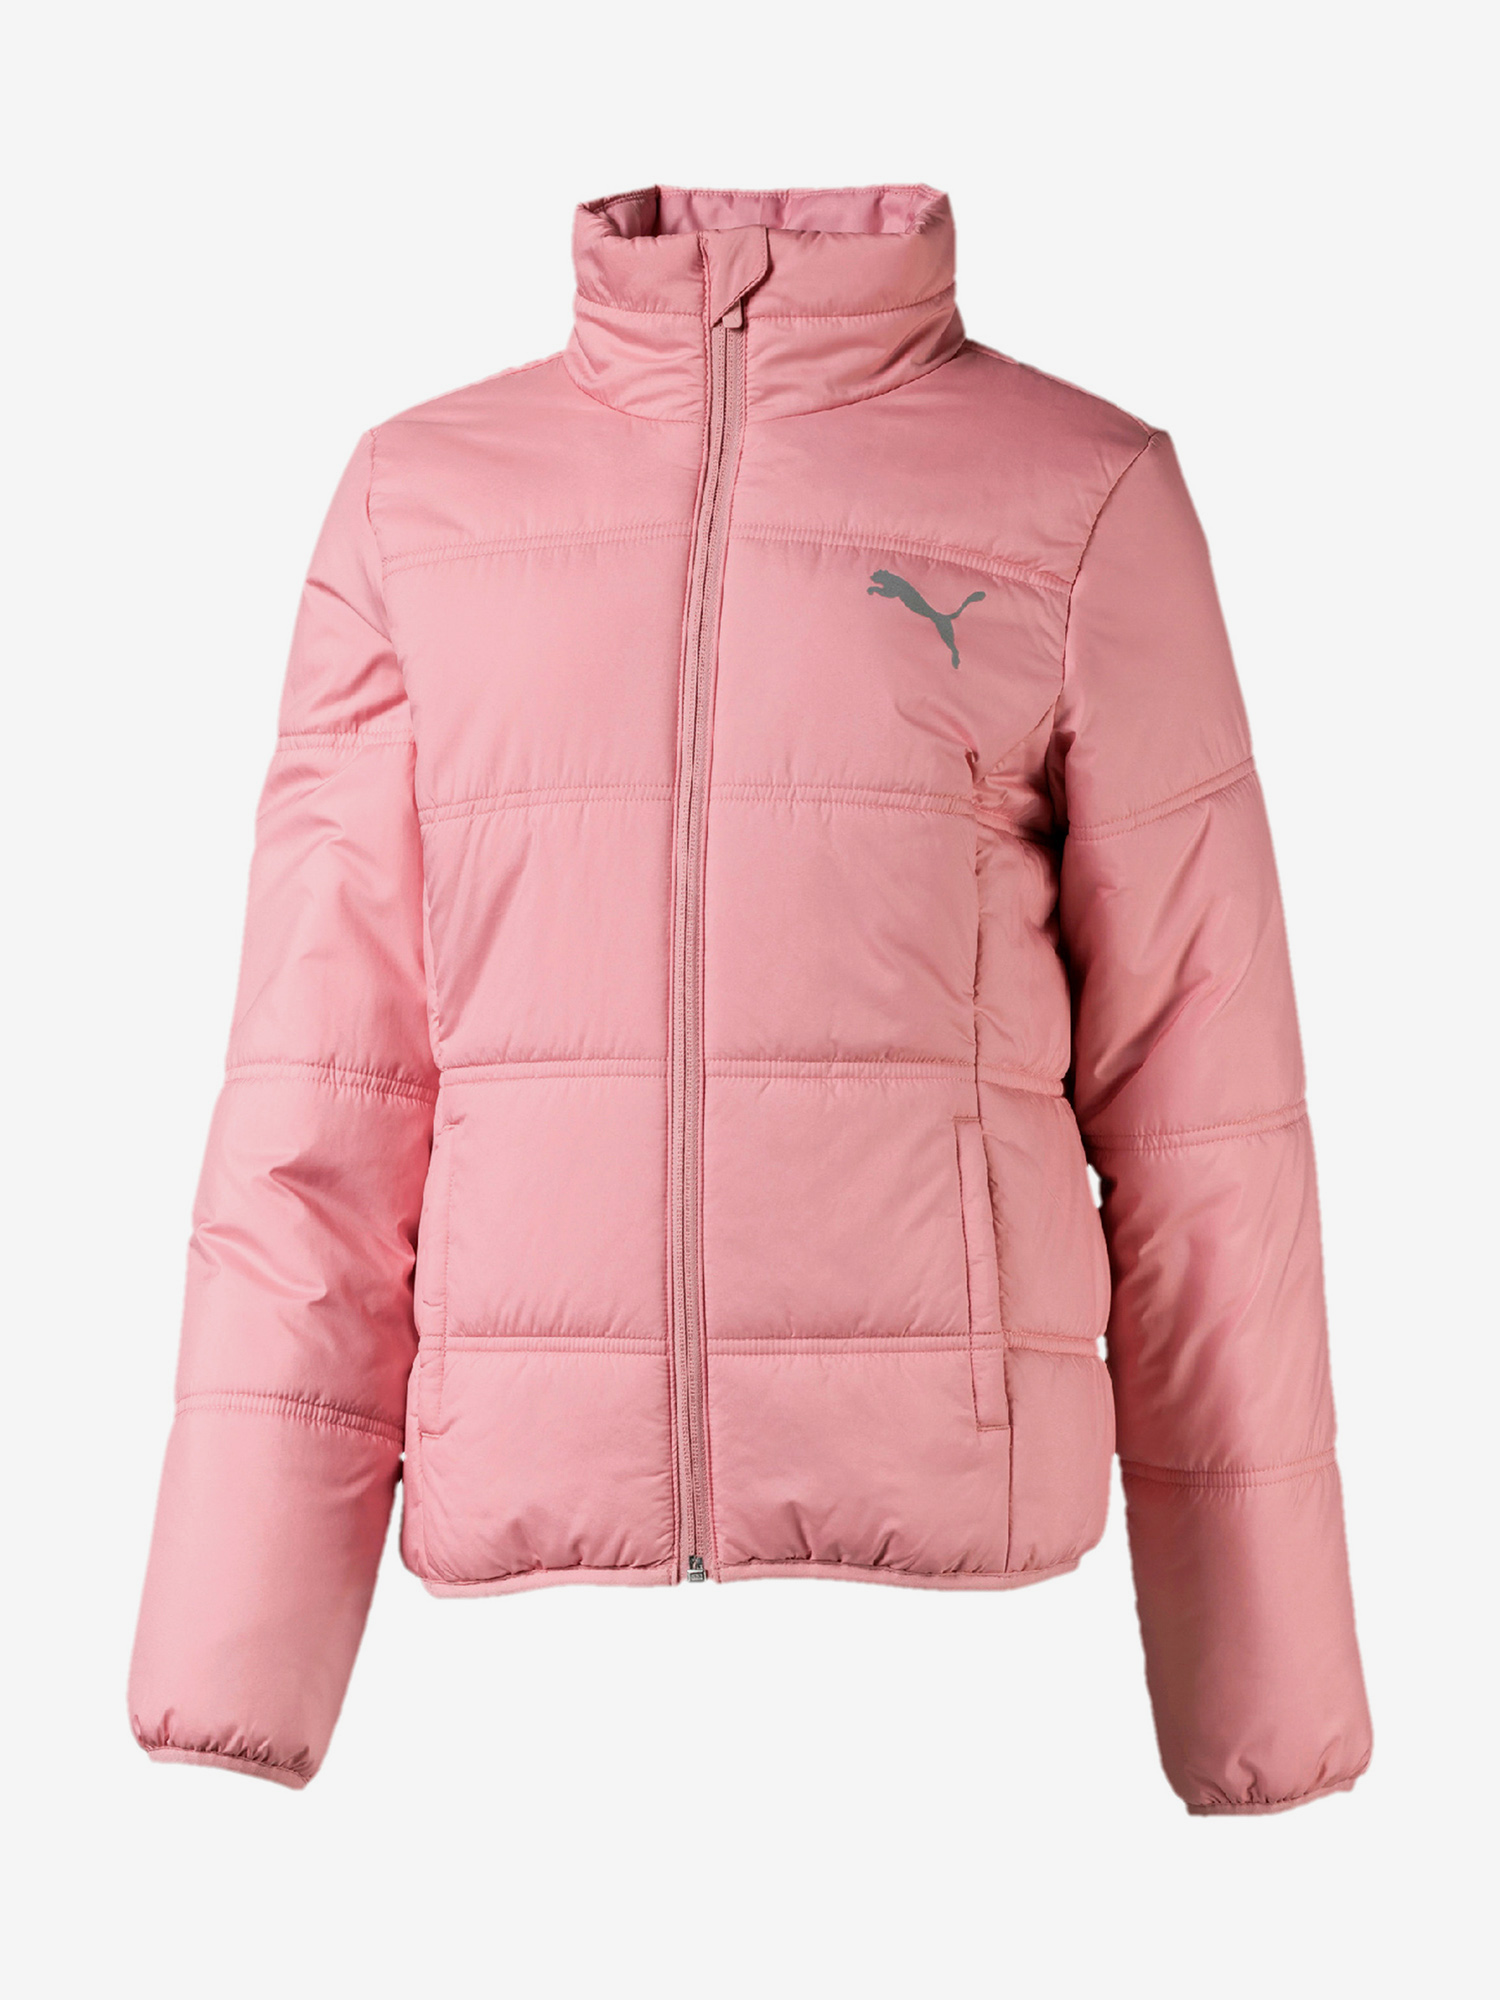 Bunda Puma Essentials Padded Jacket Červená